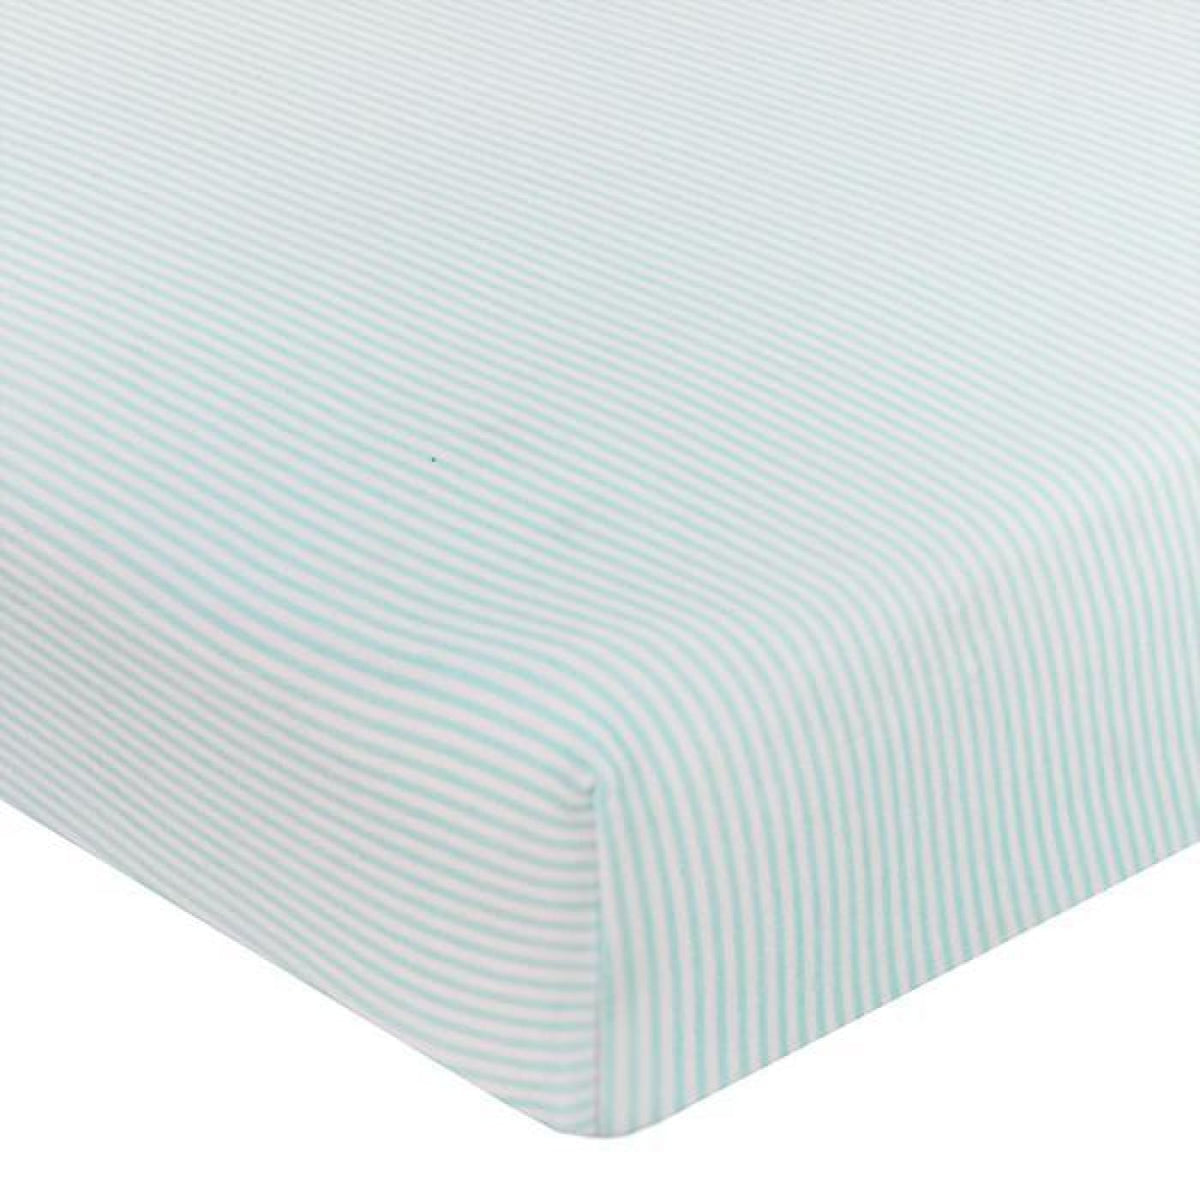 Living Textiles Cot Fitted Sheet Jersey - Aqua Stripe - NURSERY & BEDTIME - COT MANCHESTER